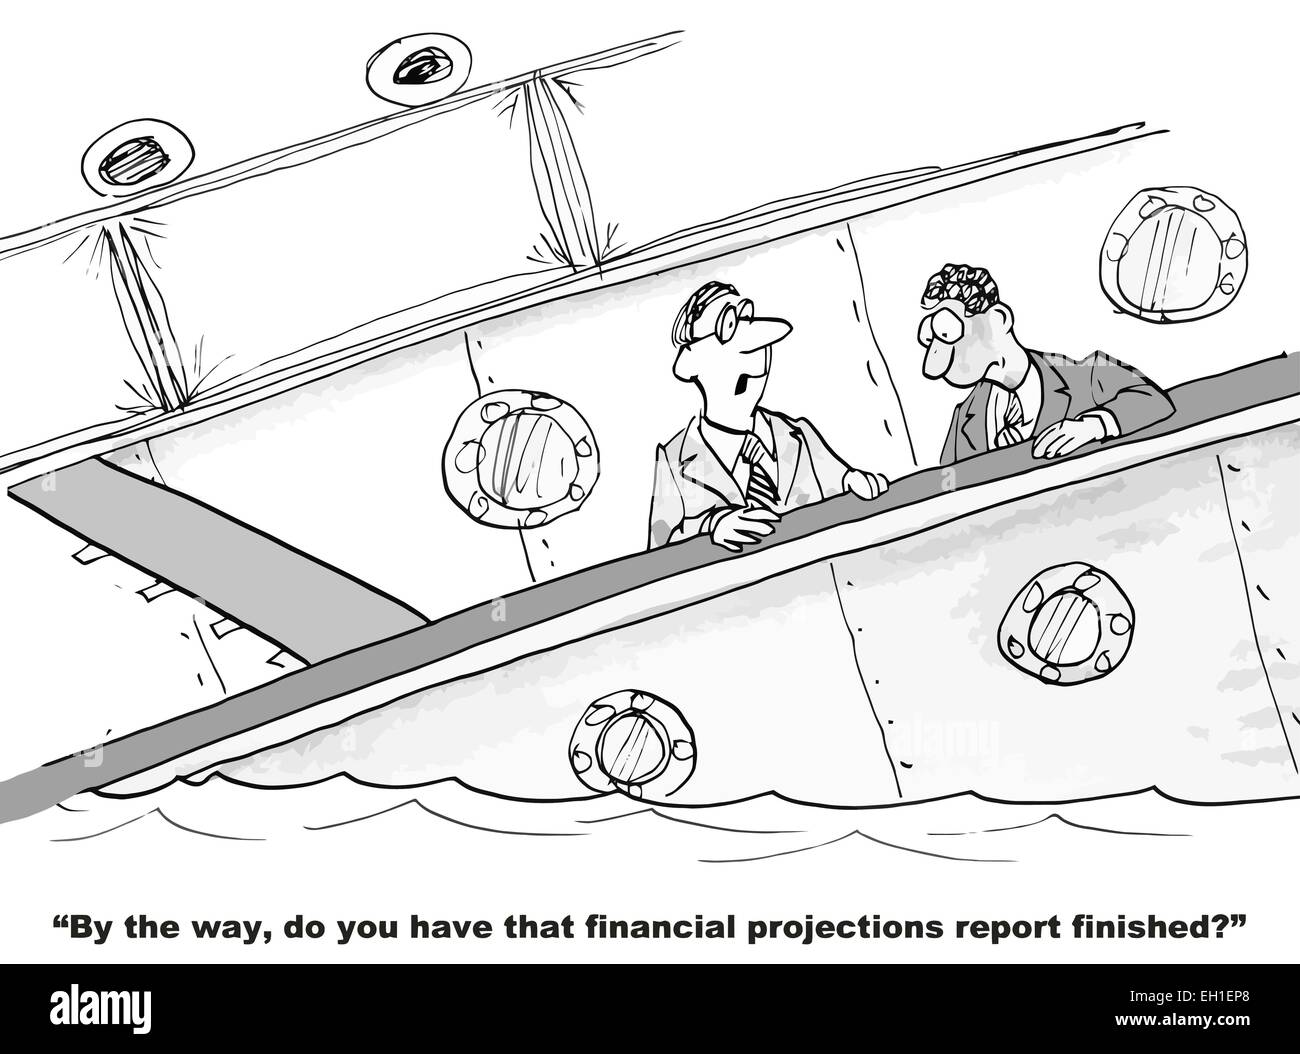 Cartoon Of Sinking Ship Business Boss Asks Do You